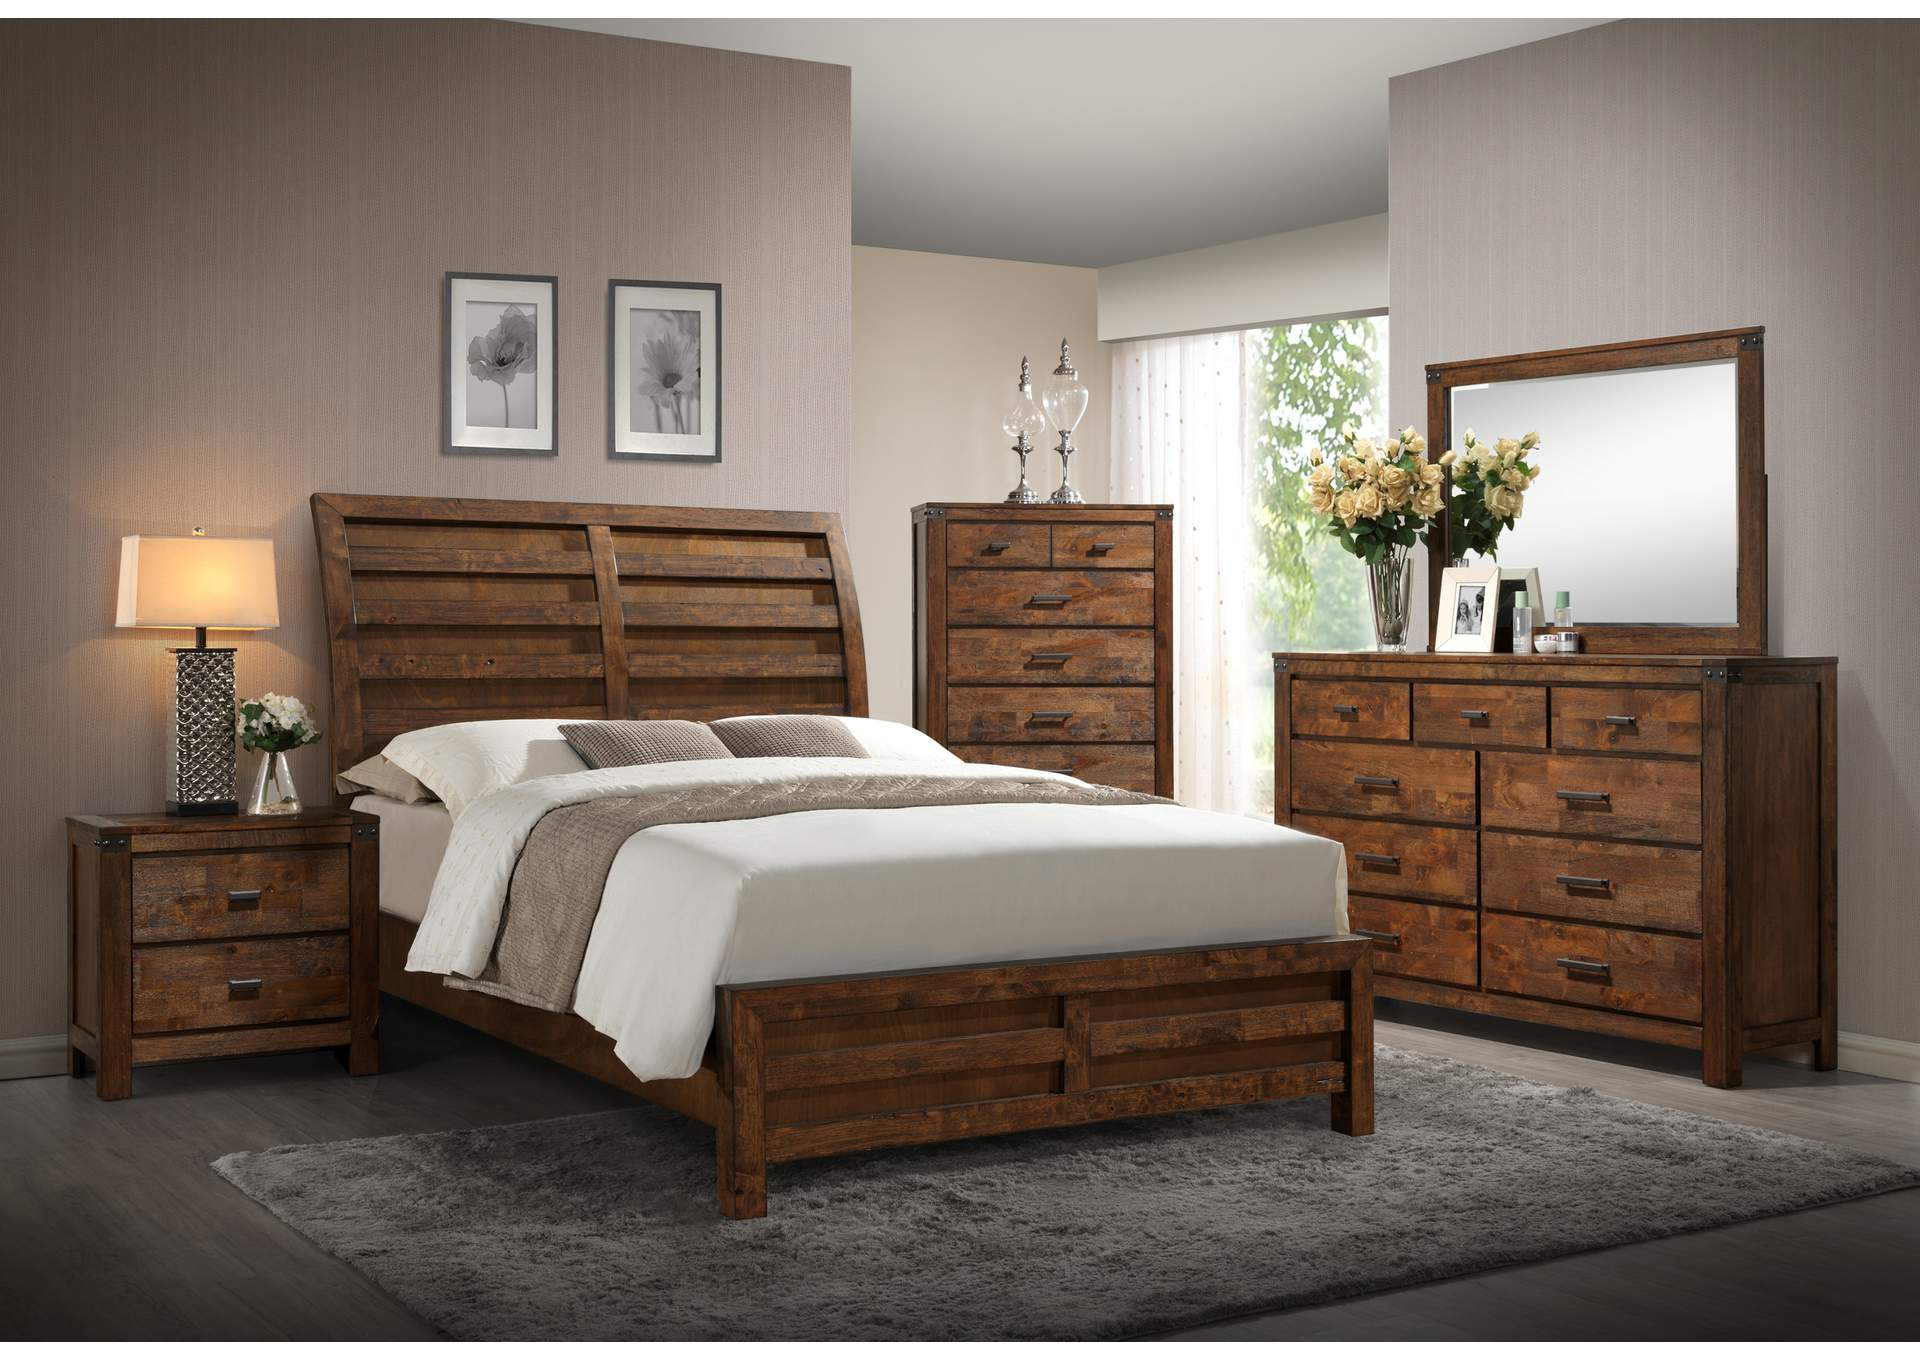 Ware House Furniture Curtis Solid Wood Sleigh Queen Bed Wdresser